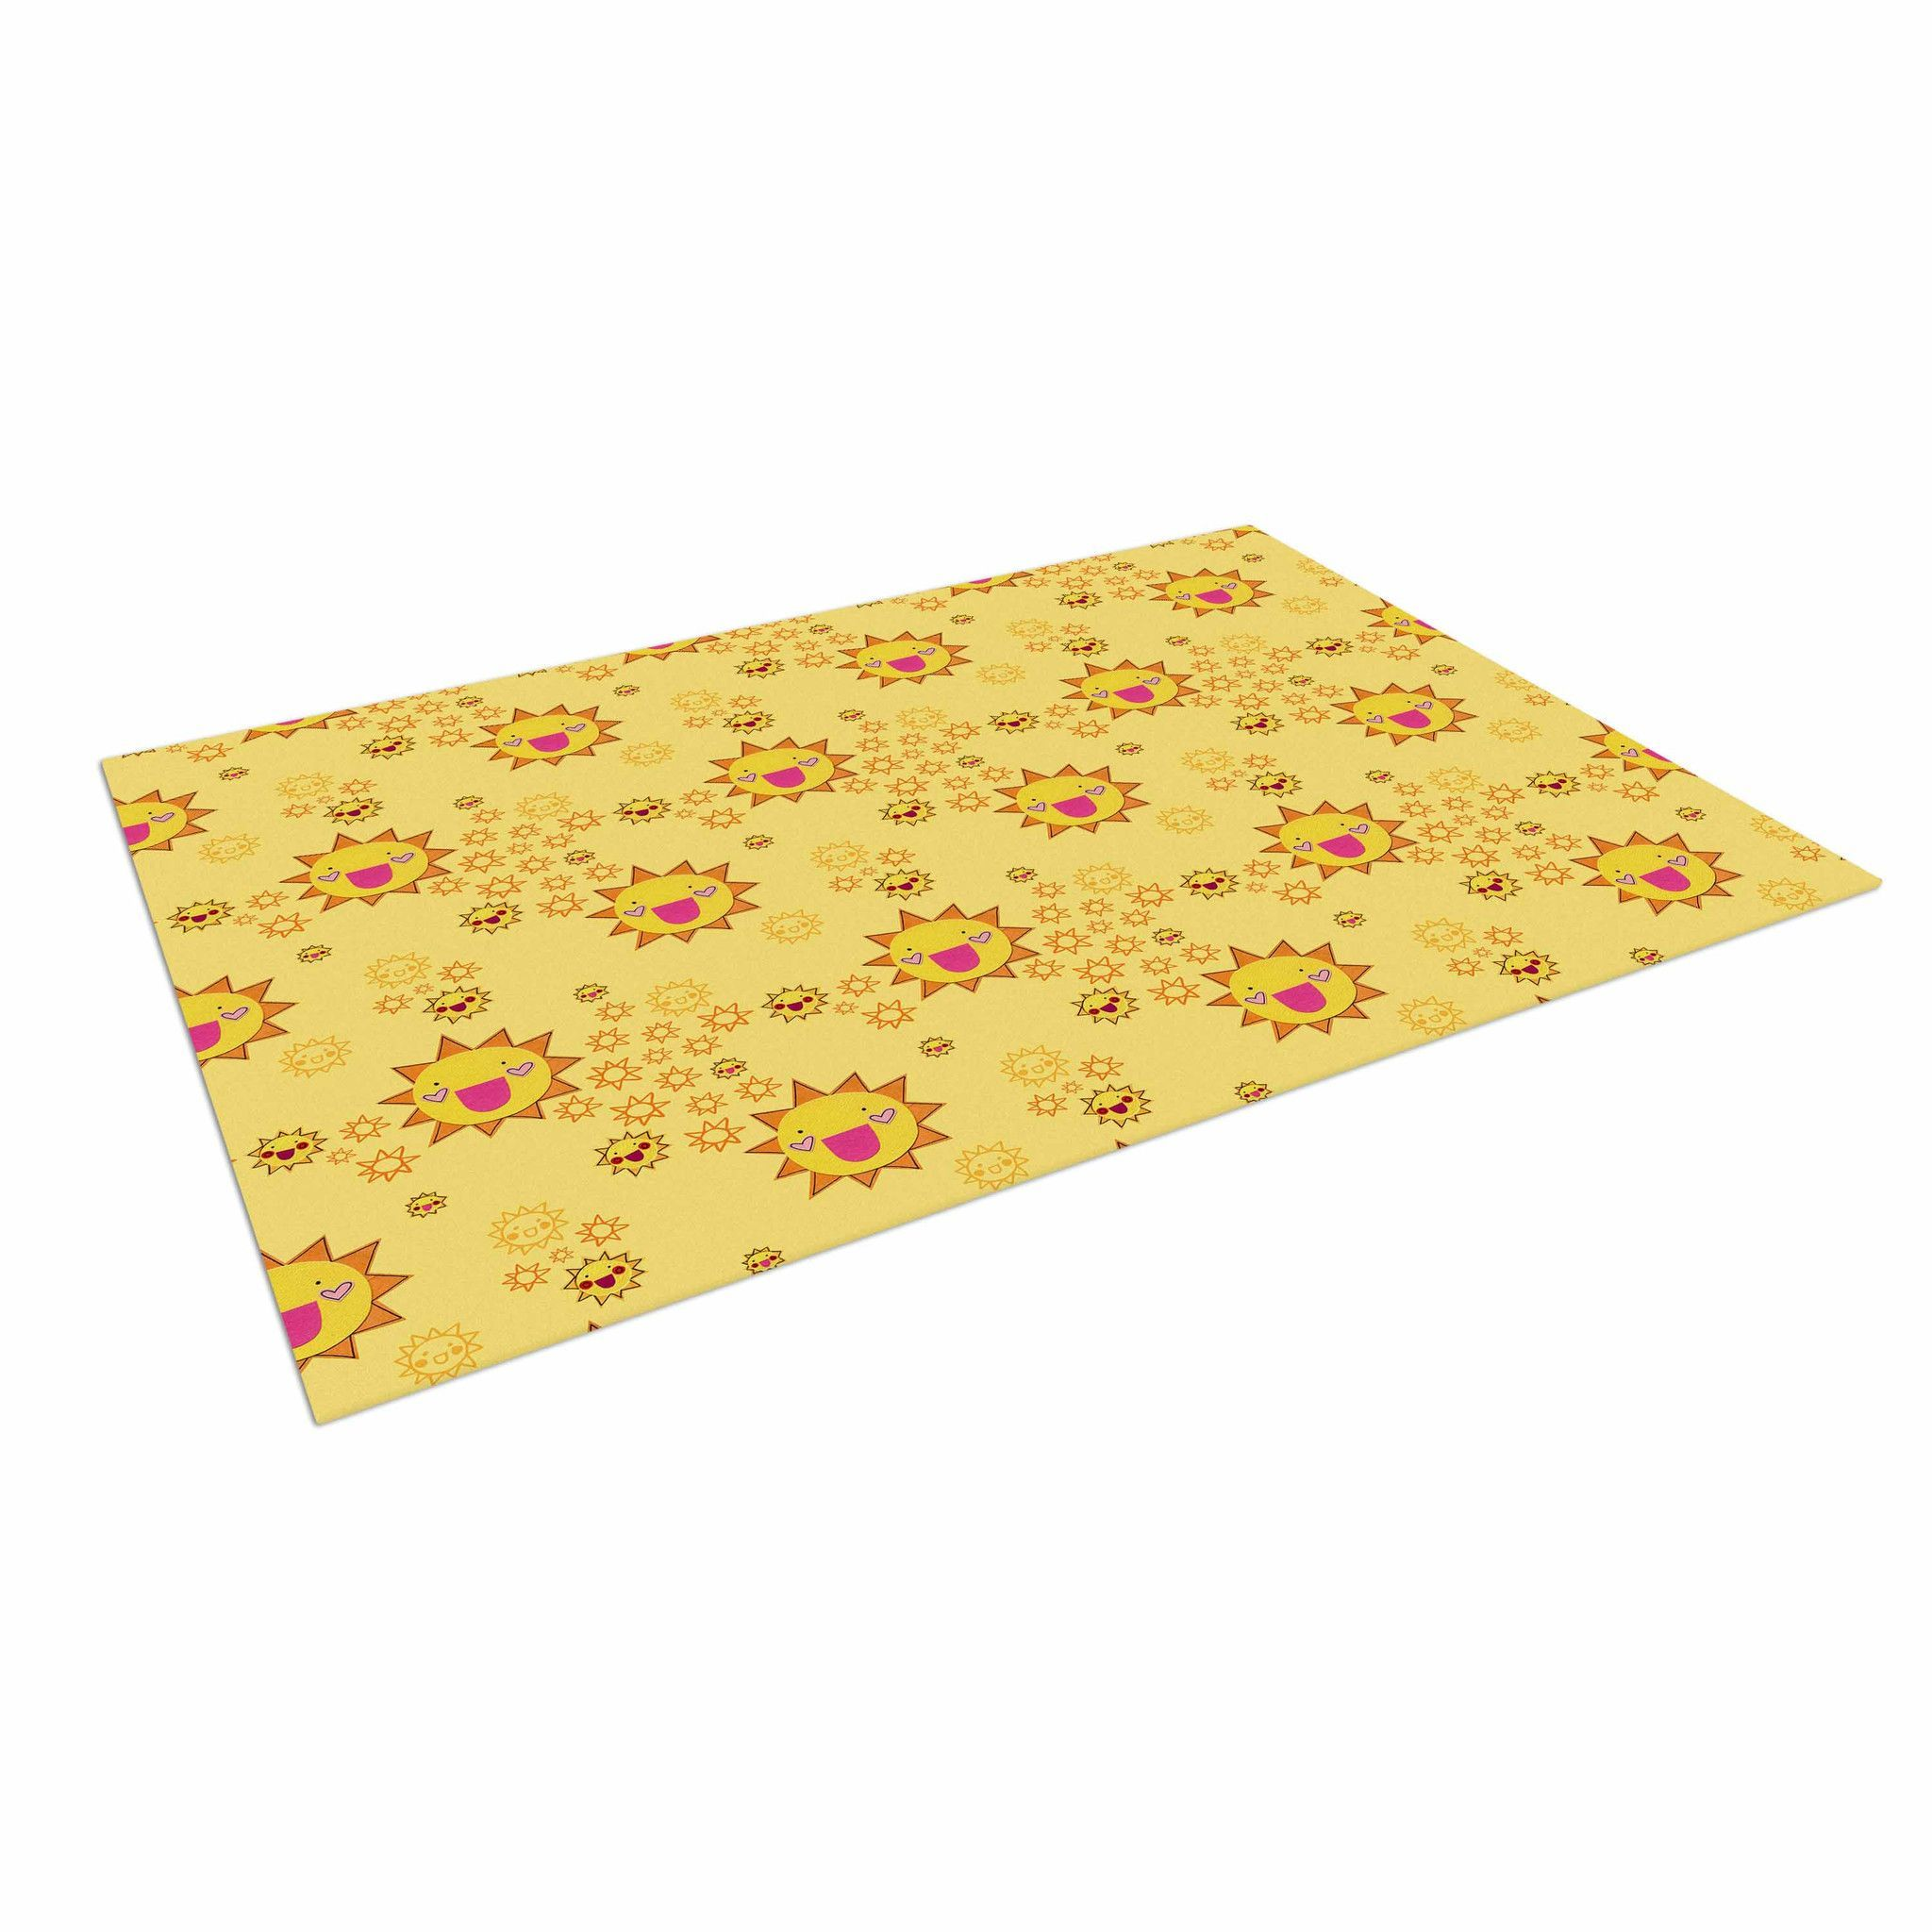 wa spa hotel itm bathroom mats alurri mat reversible by and paper white style set floor of